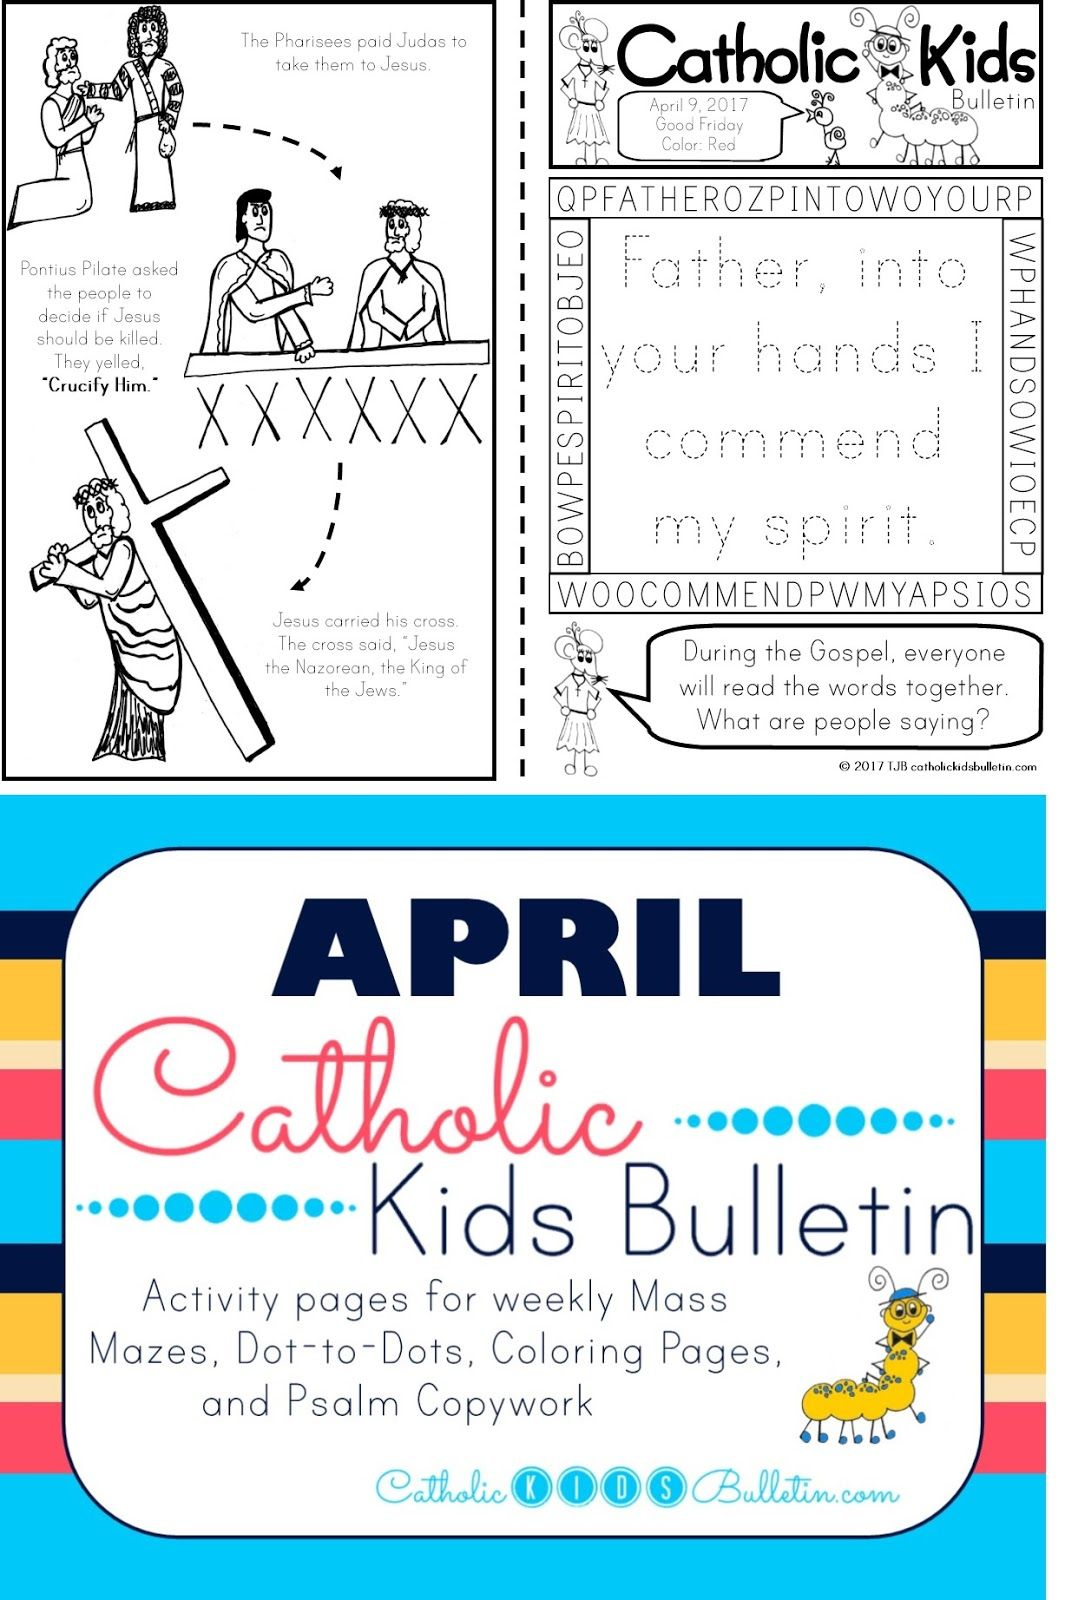 The Catholic Kids Bulletin Worksheets Match Up To The